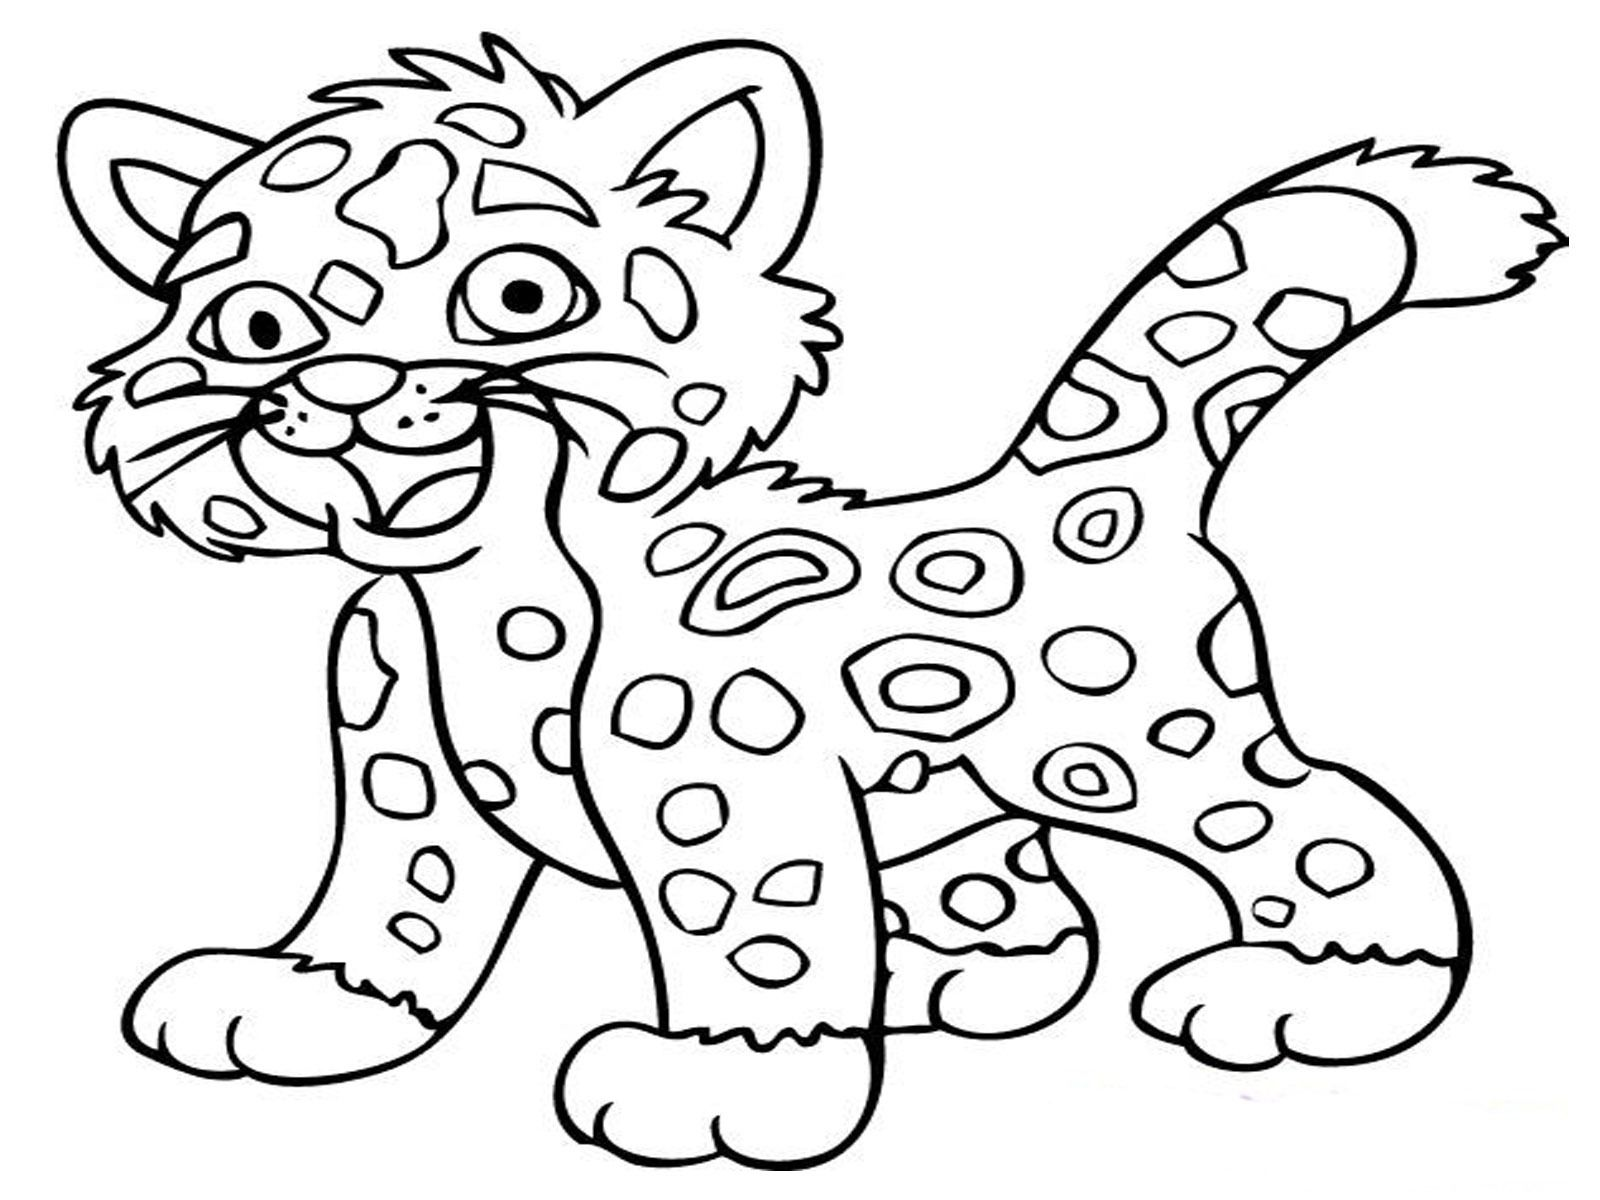 Diego Baby Jaguar Coloring Pages Photos